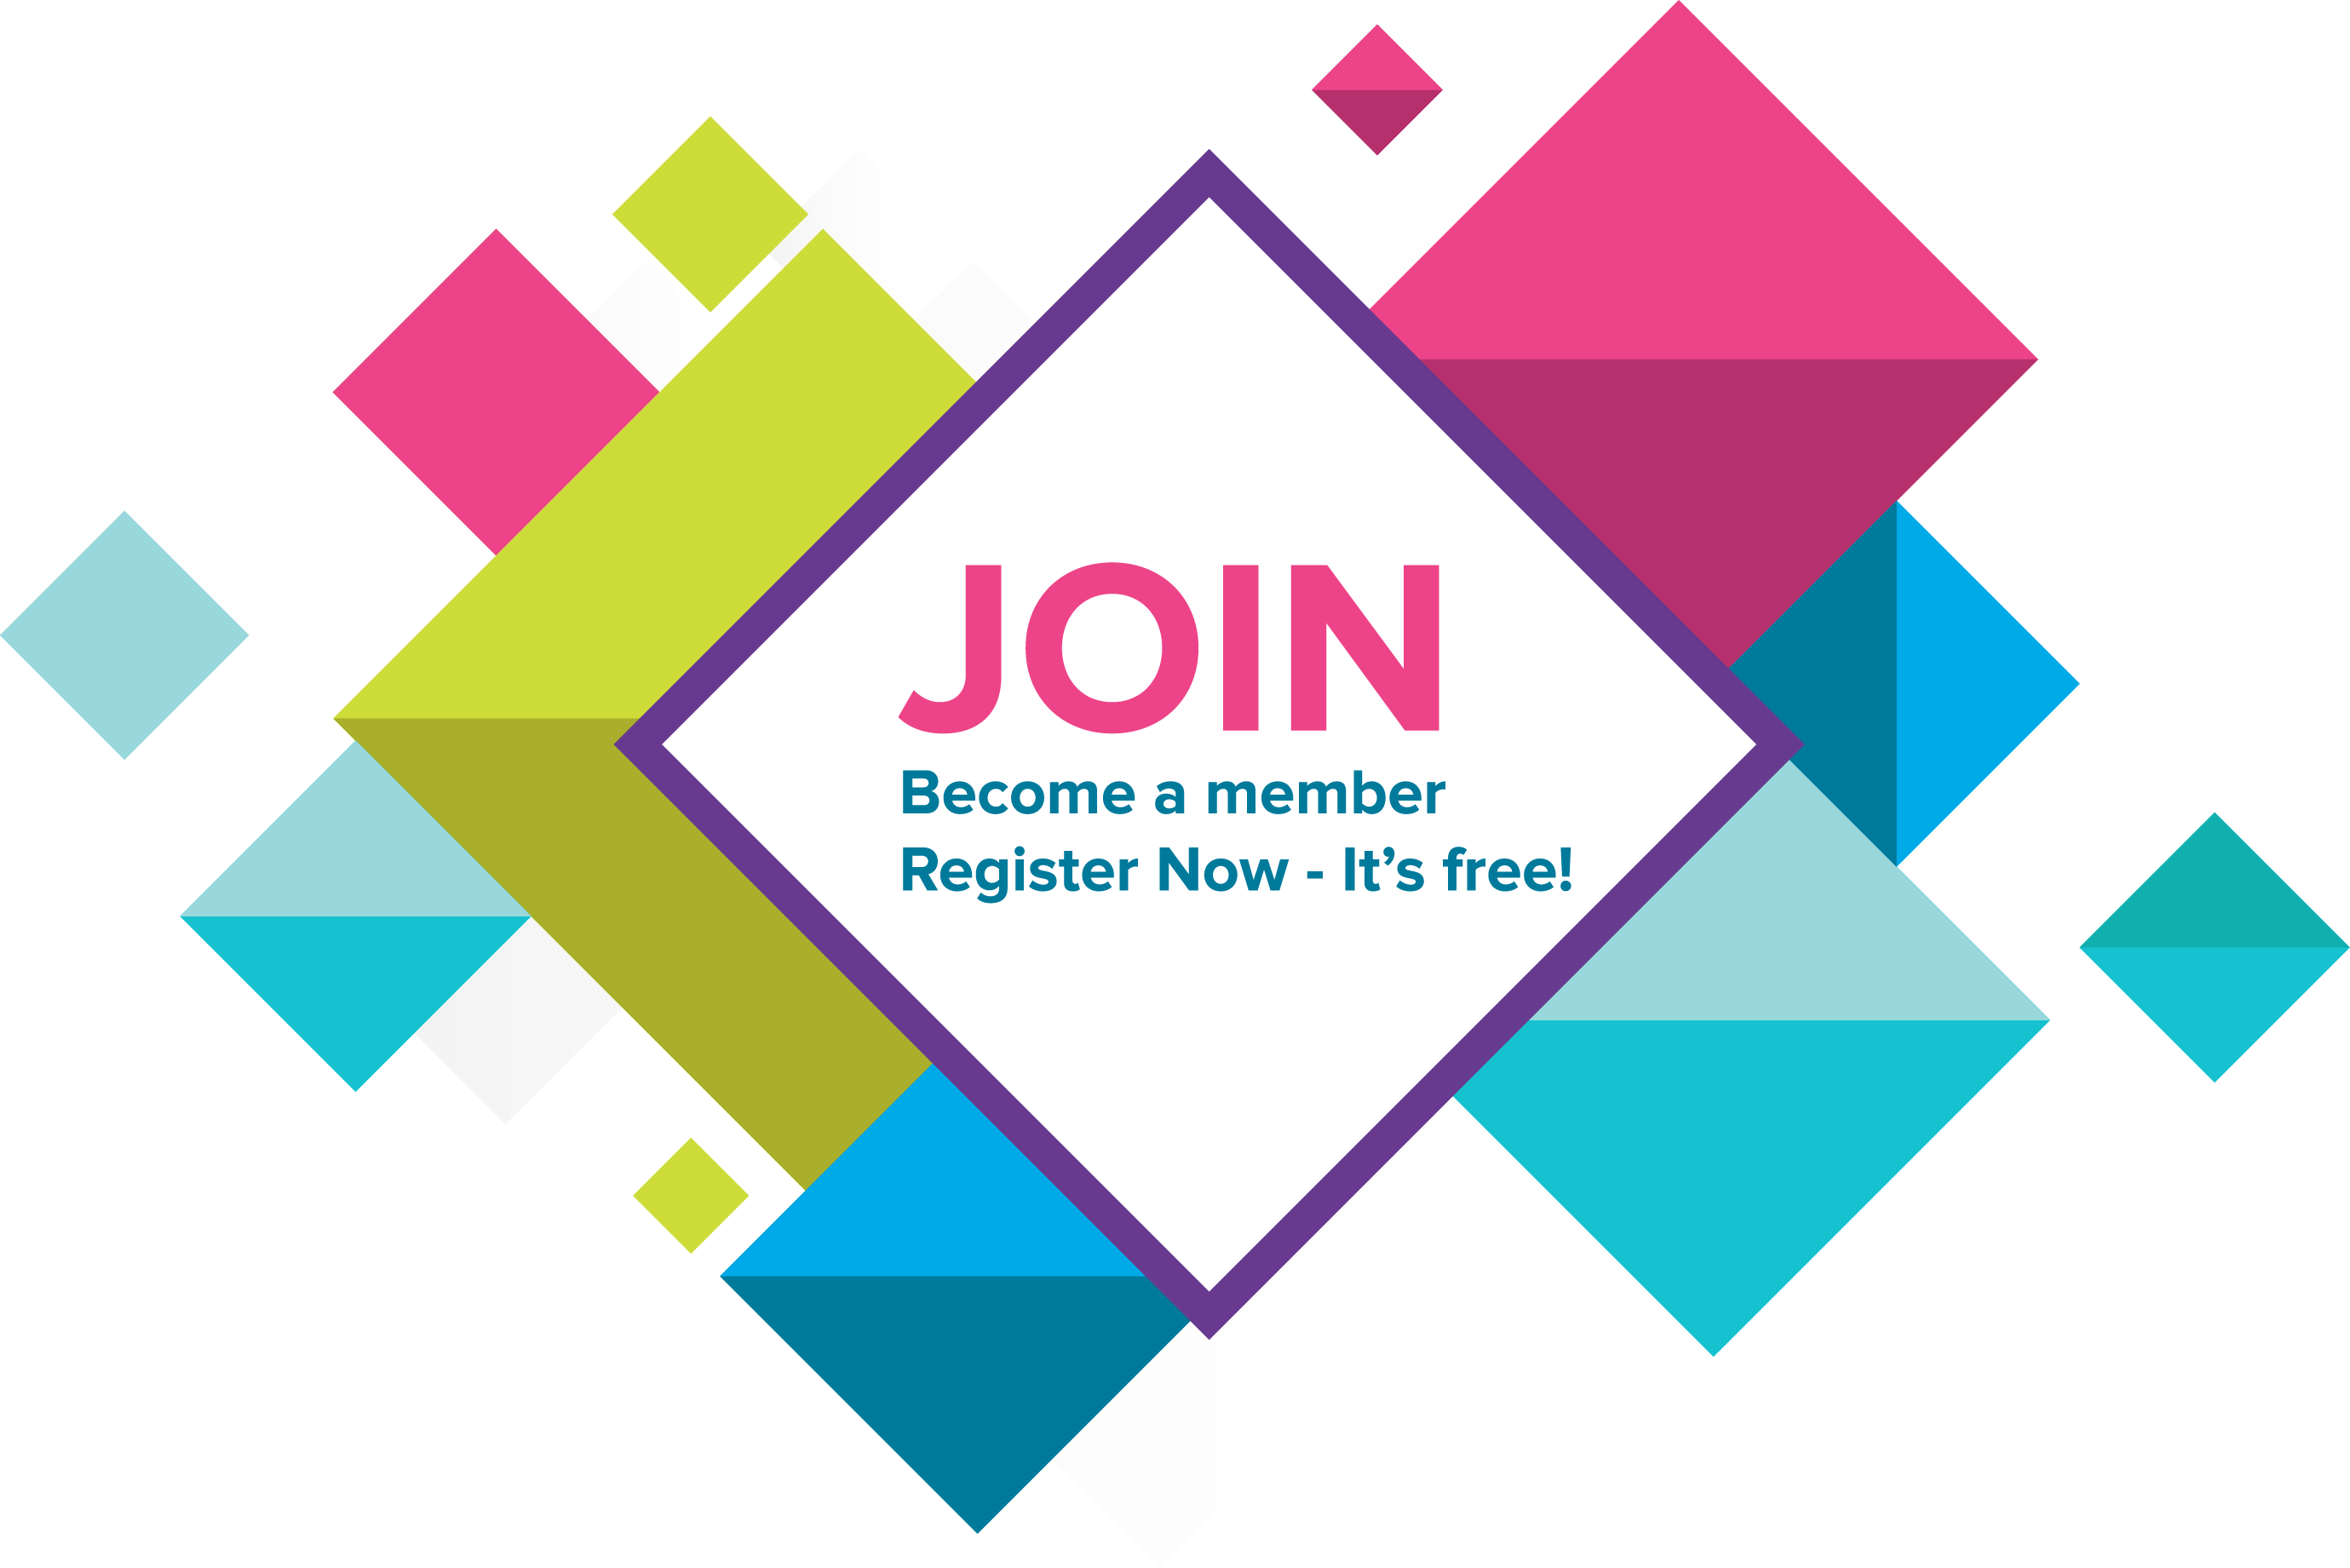 Join - Become a member